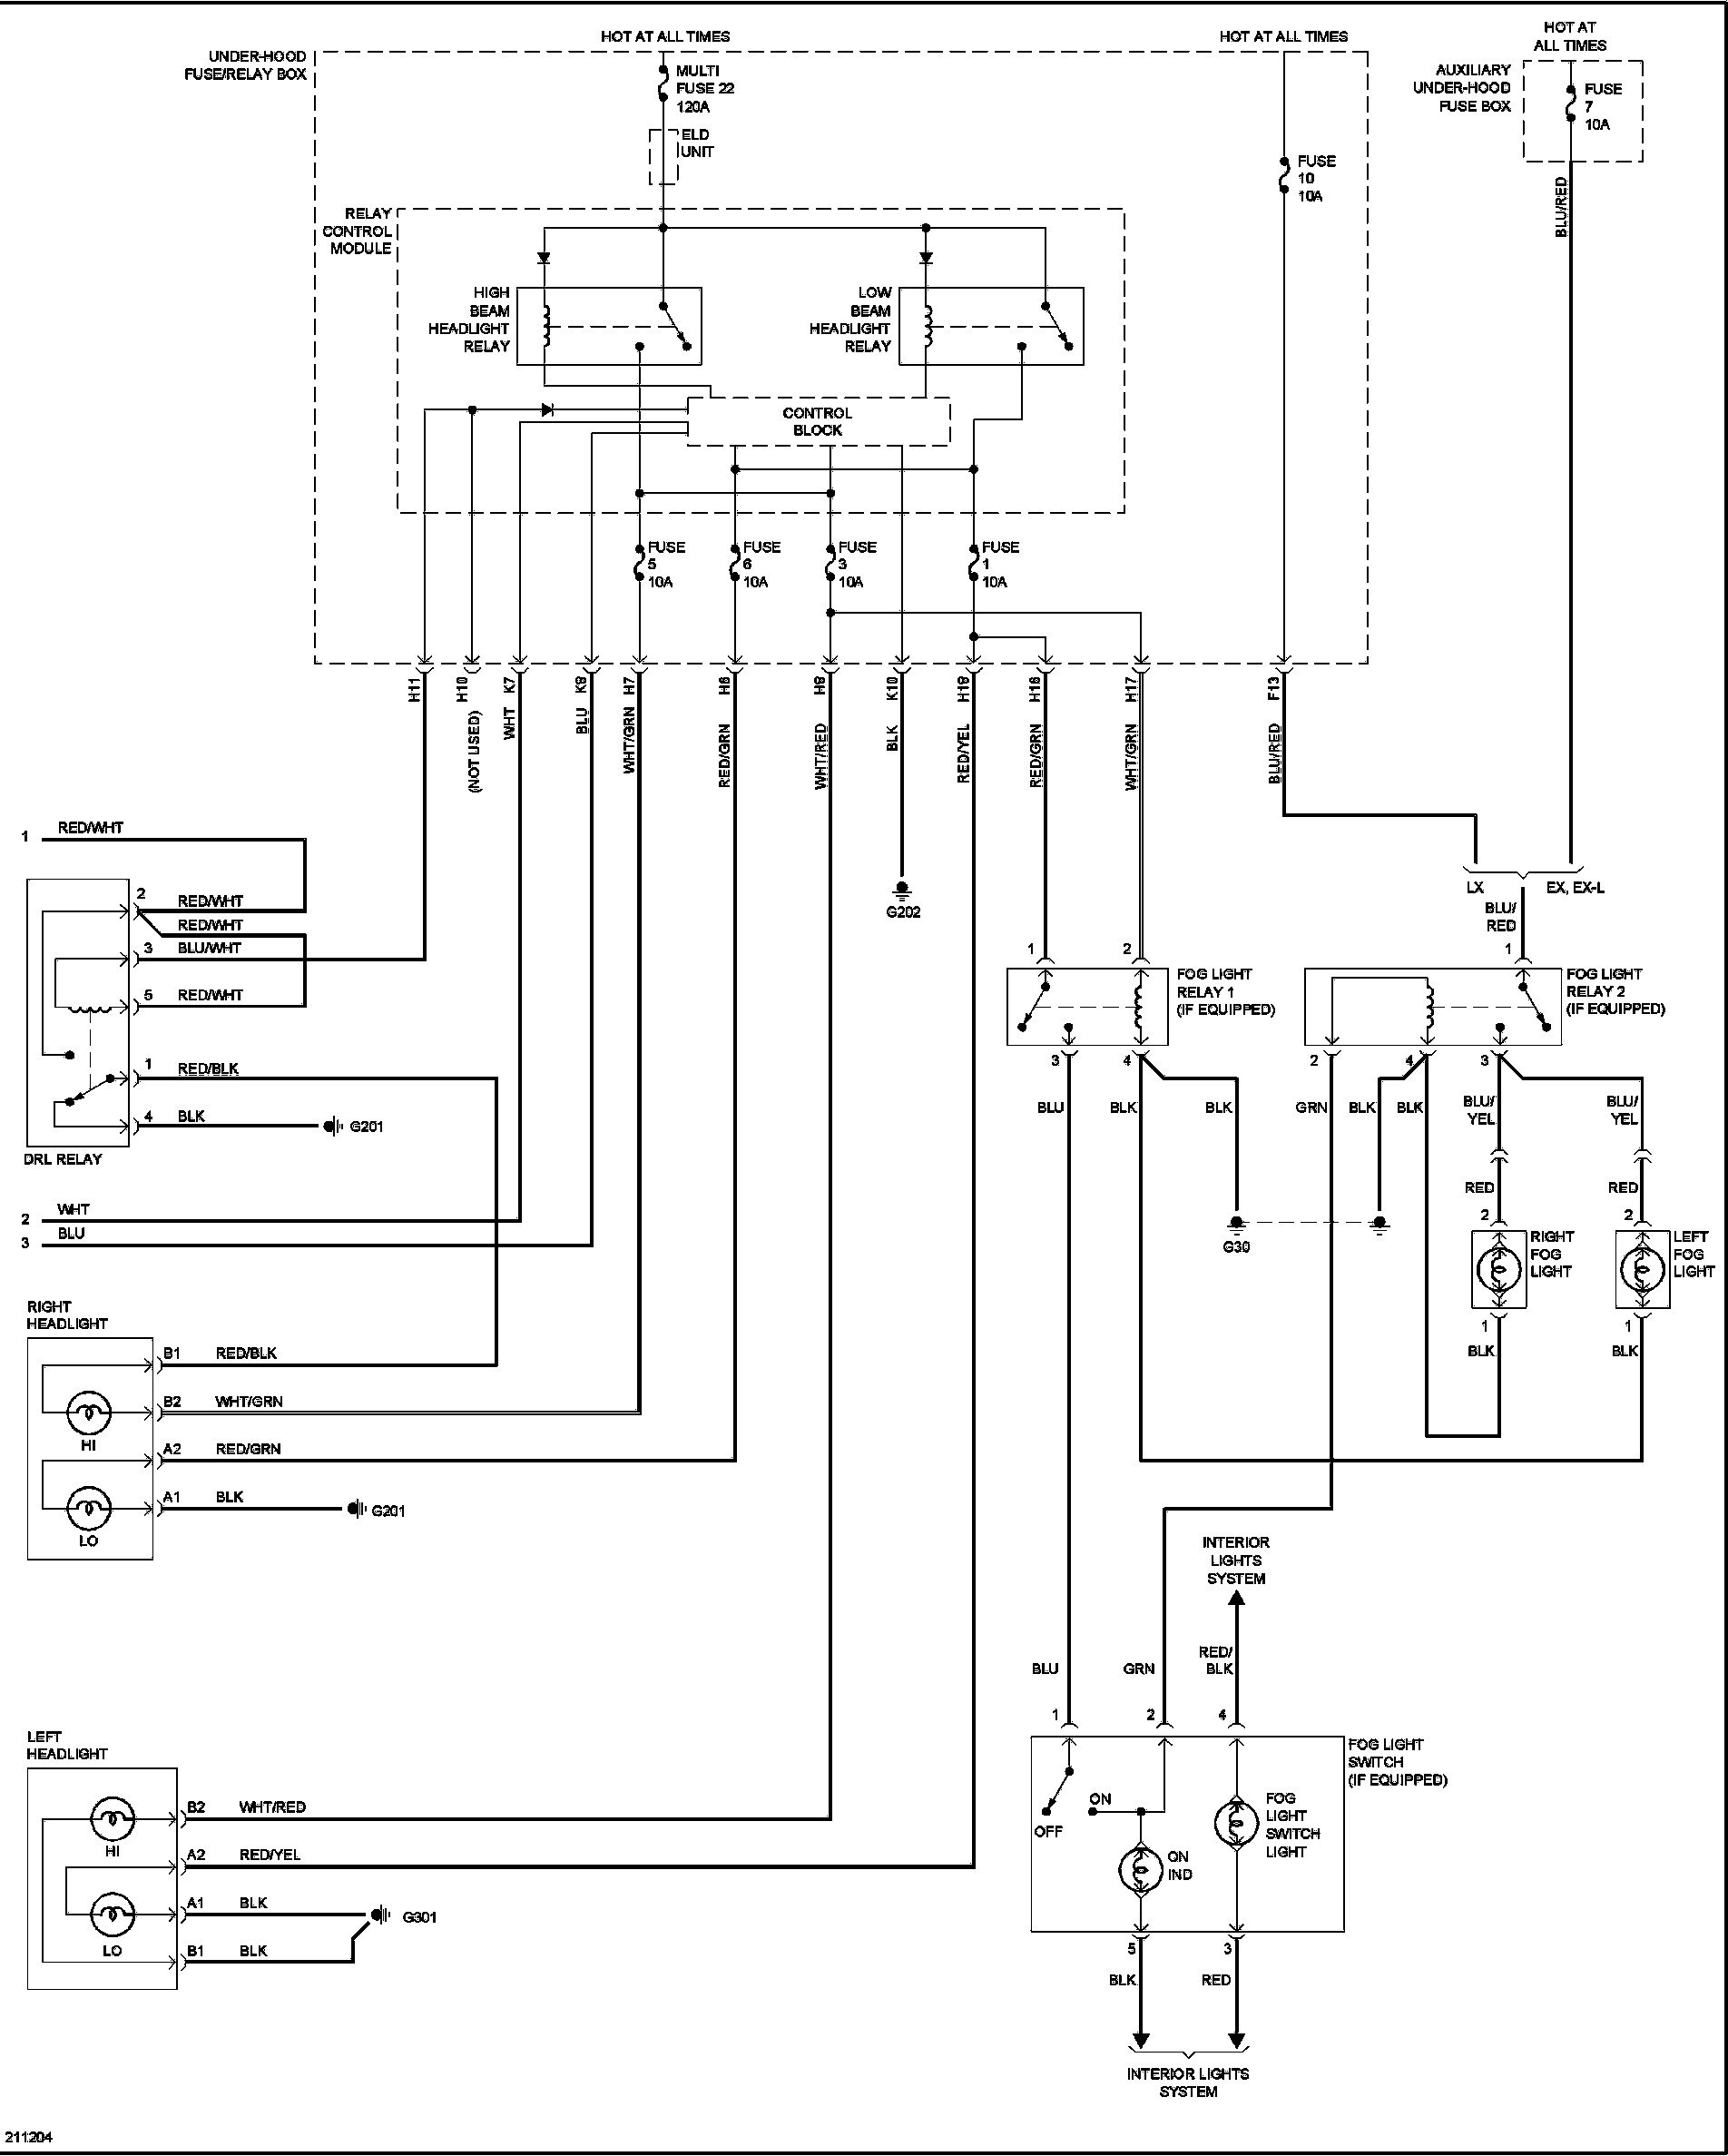 hight resolution of 2013 honda odyssey wiring diagrams my wiring diagram 2014 honda odyssey radio wiring diagram 2014 honda odyssey wiring diagram